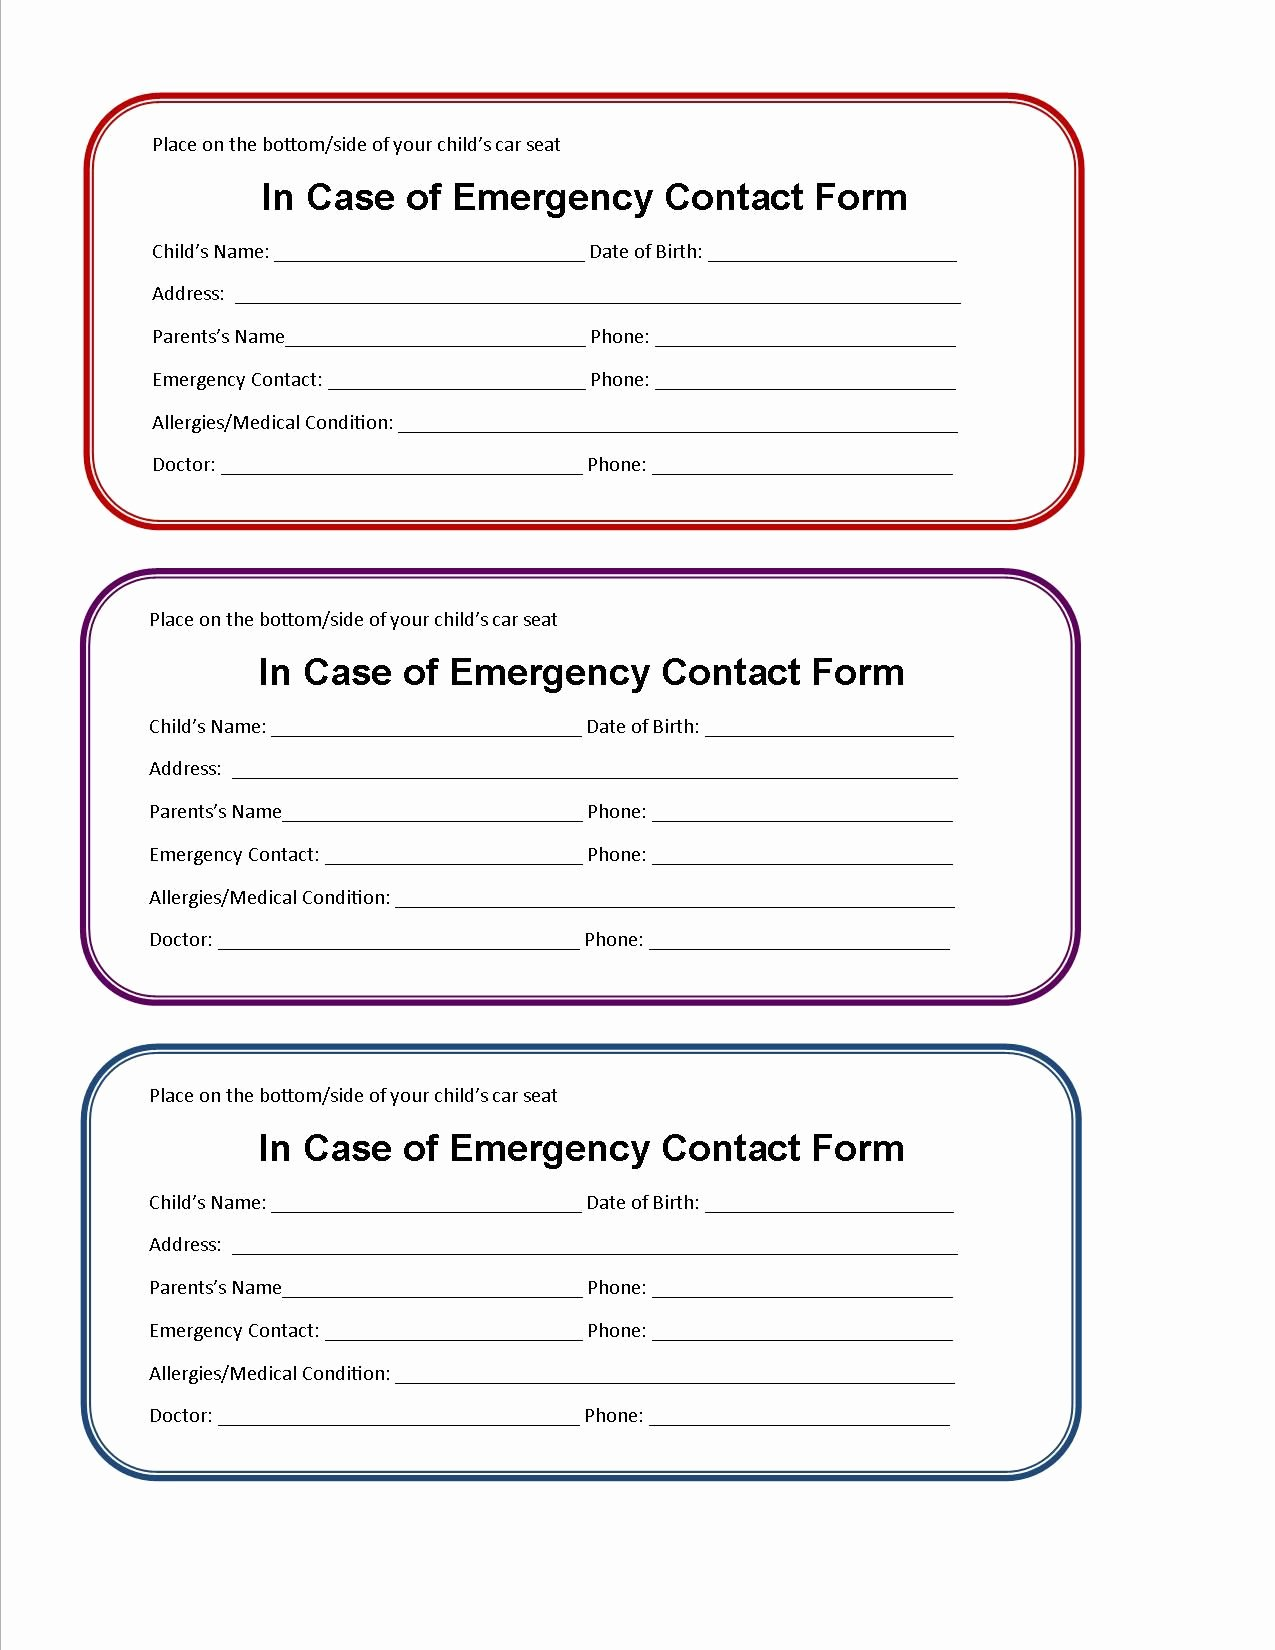 Customer Information Card Template Beautiful Printable Emergency Contact form for Car Seat